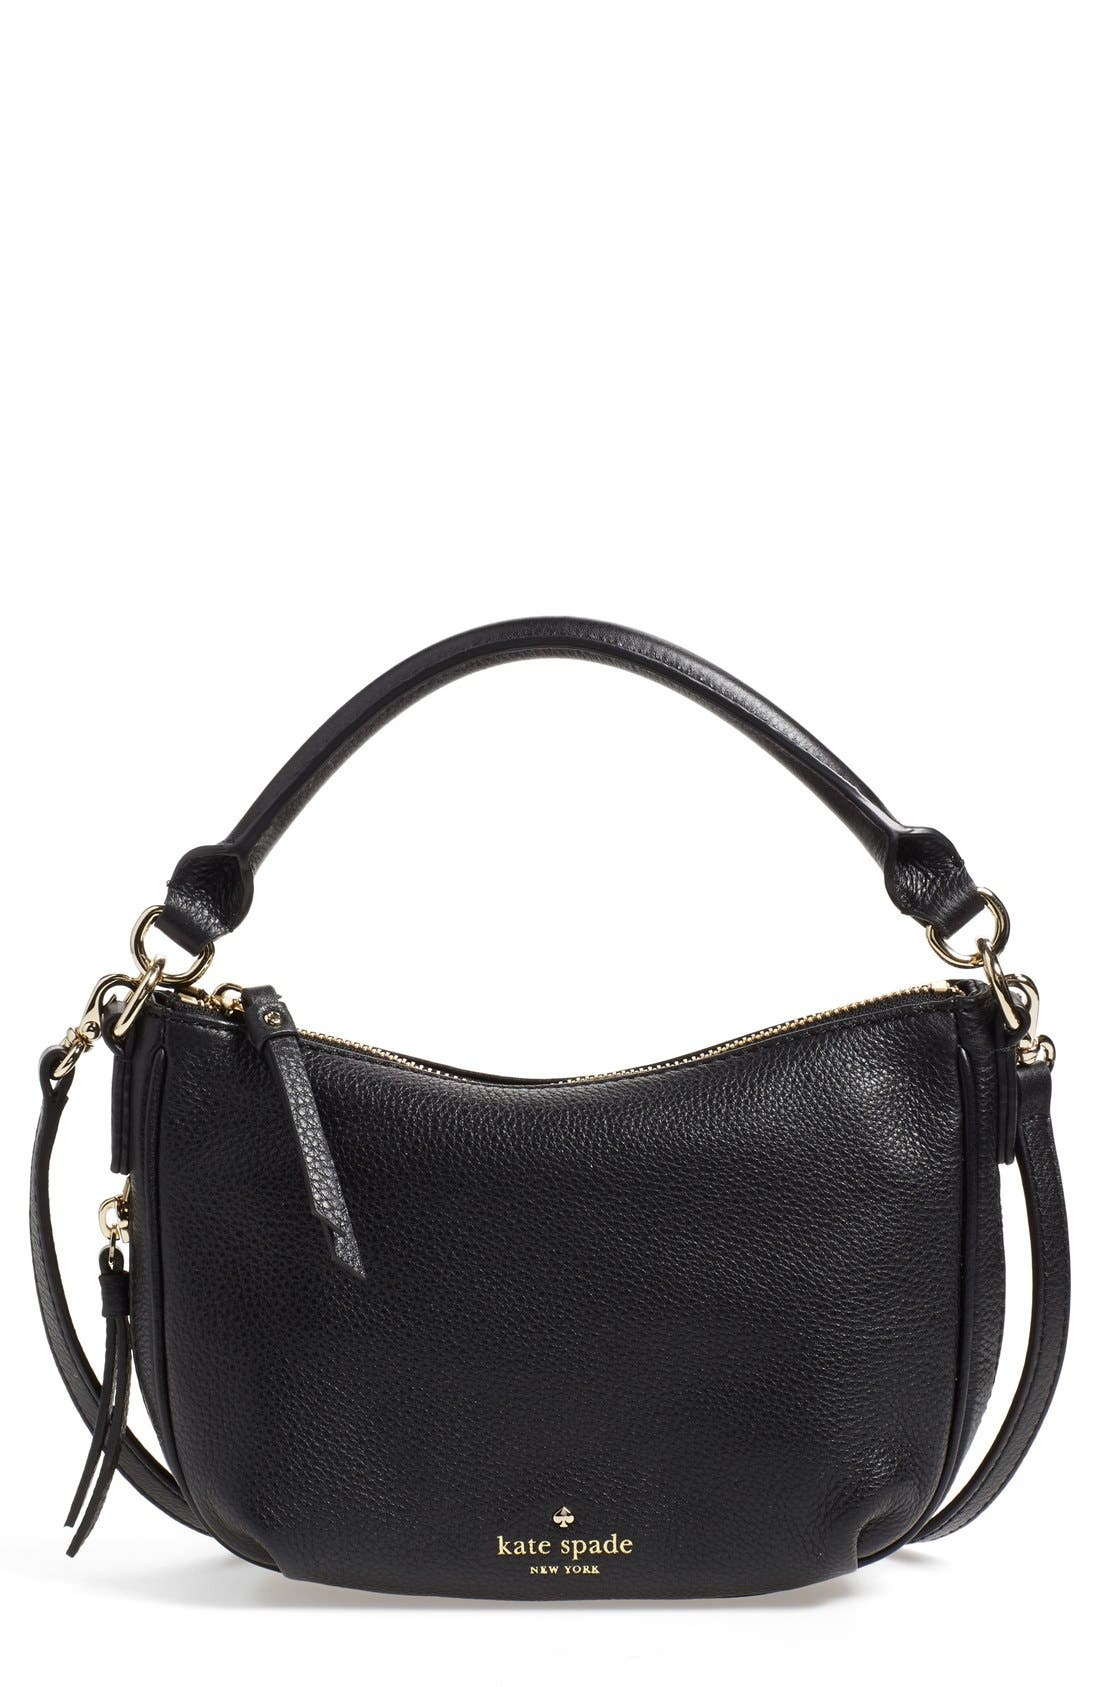 Alternate Image 1 Selected - kate spade new york 'cobble hill - mini ella' leather crossbody bag